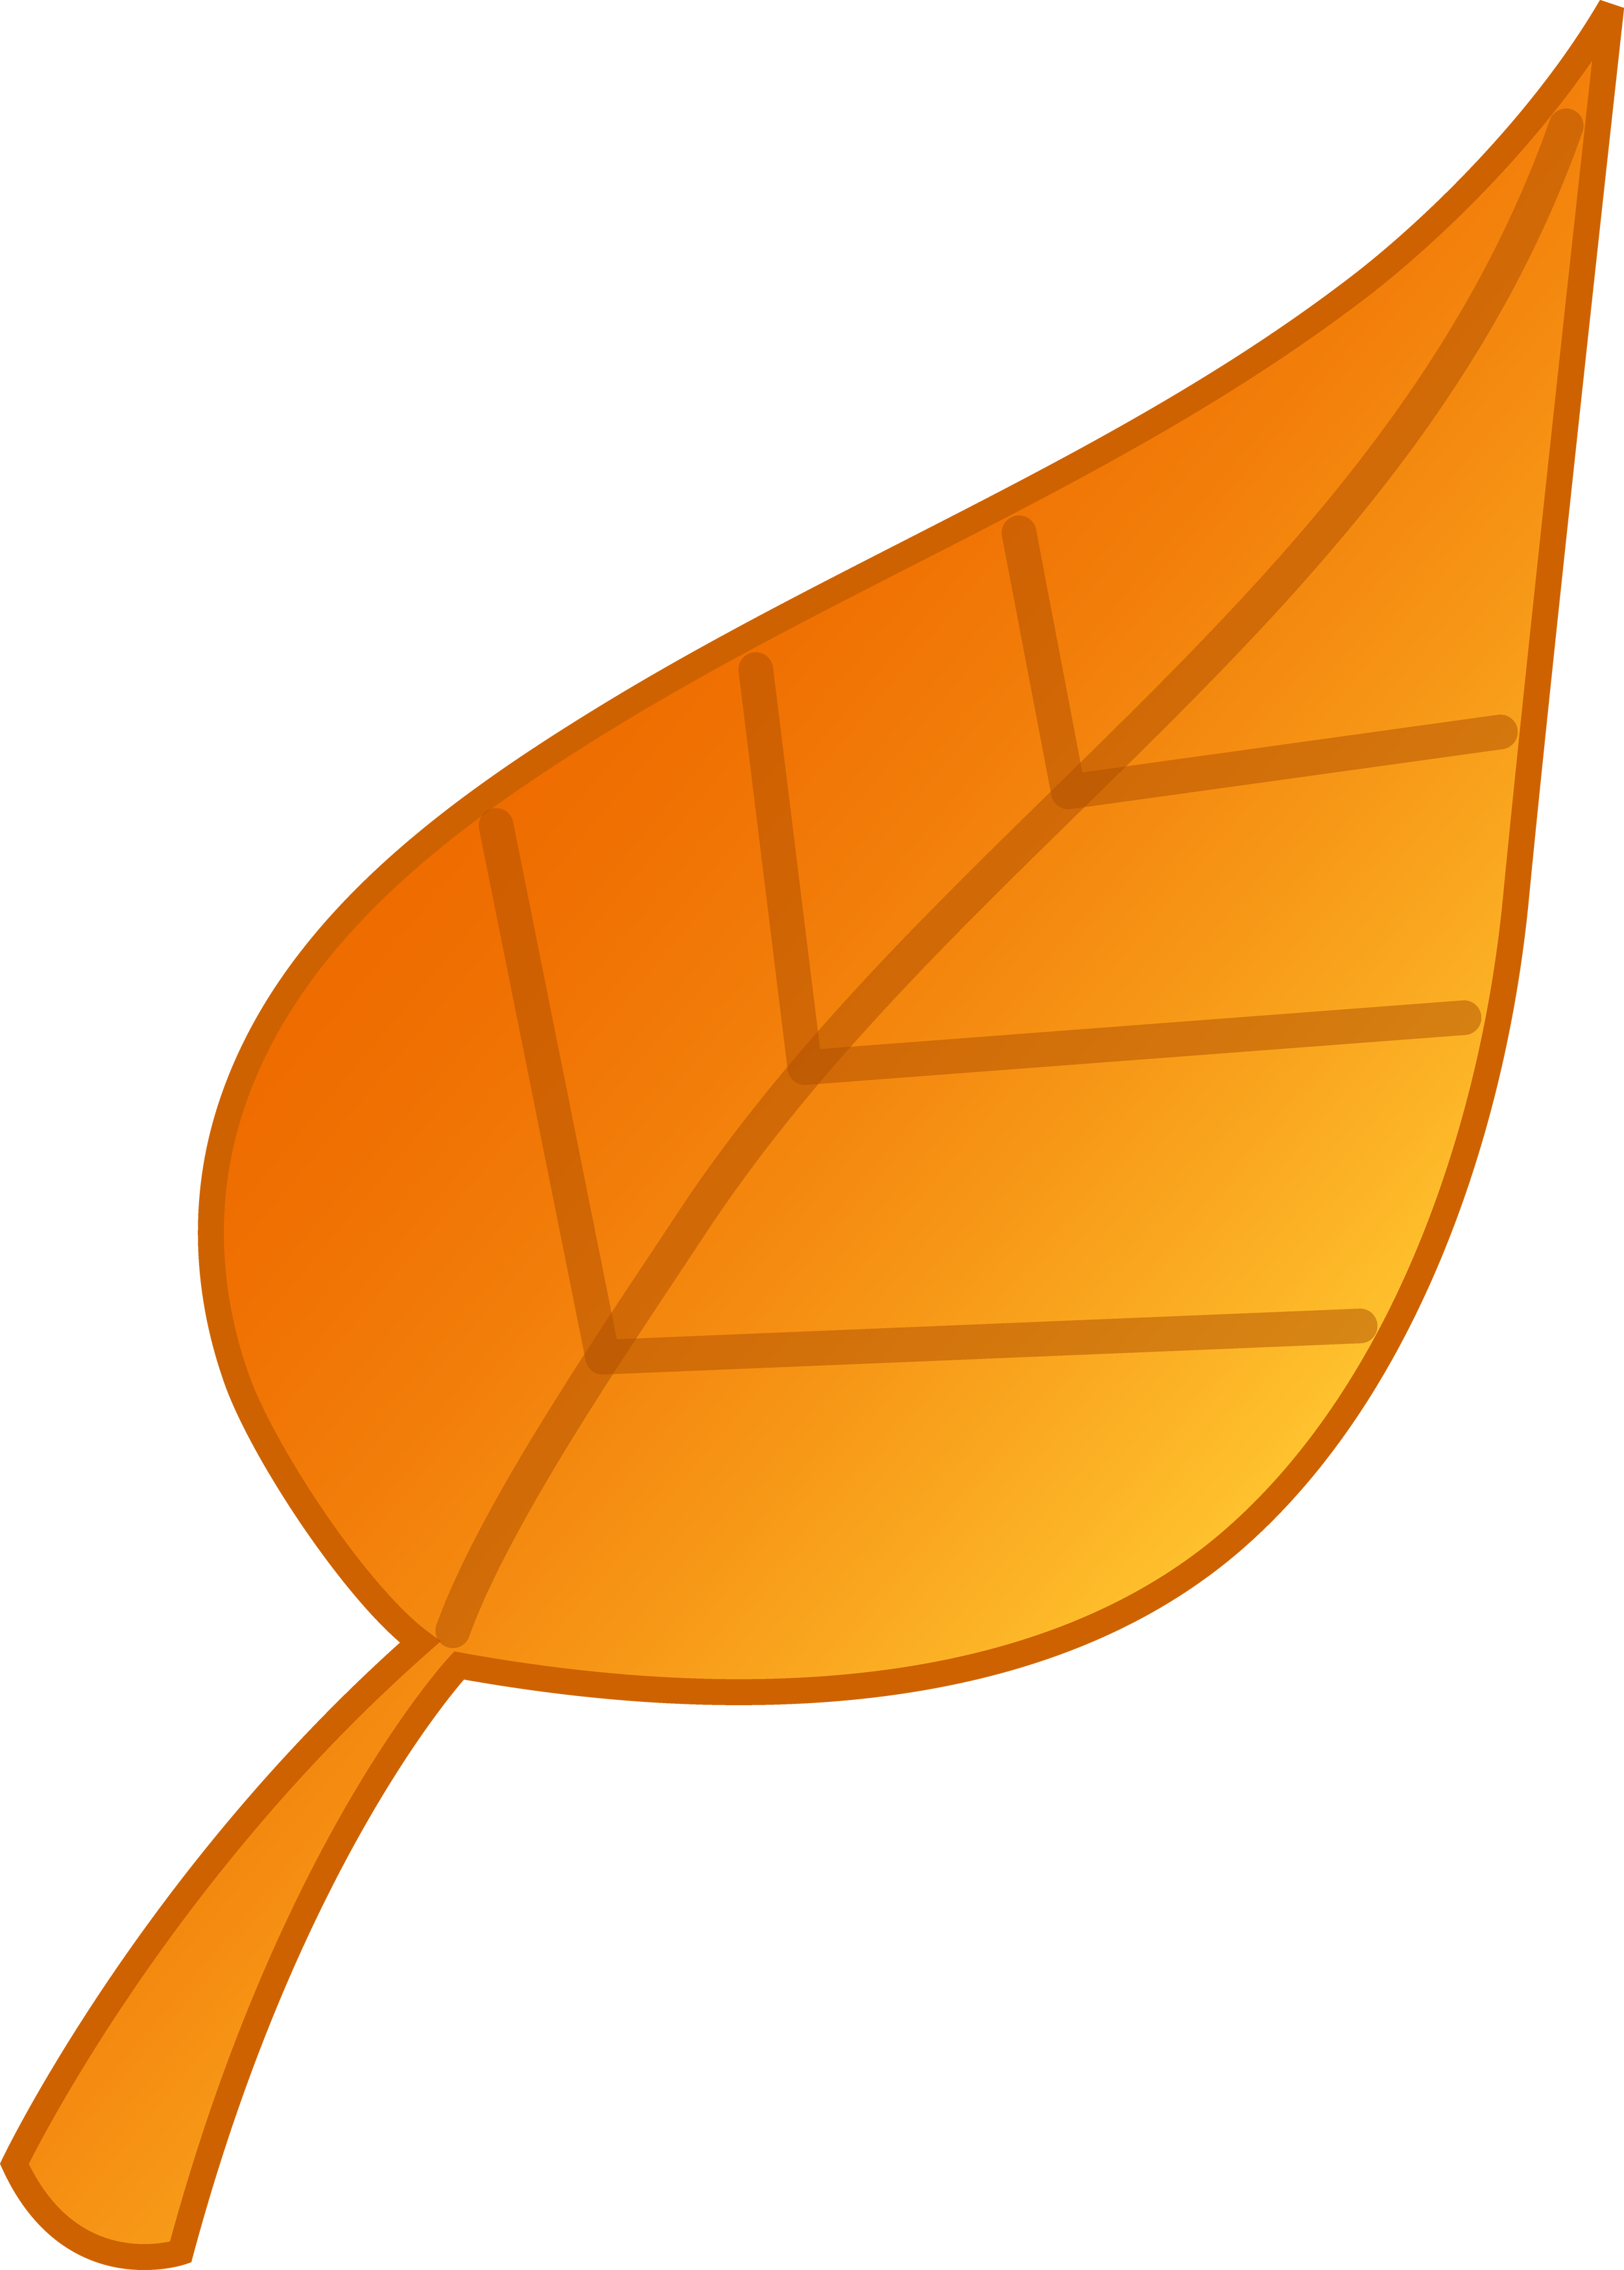 2504x3500 Simple Golden Leaf Vector Art